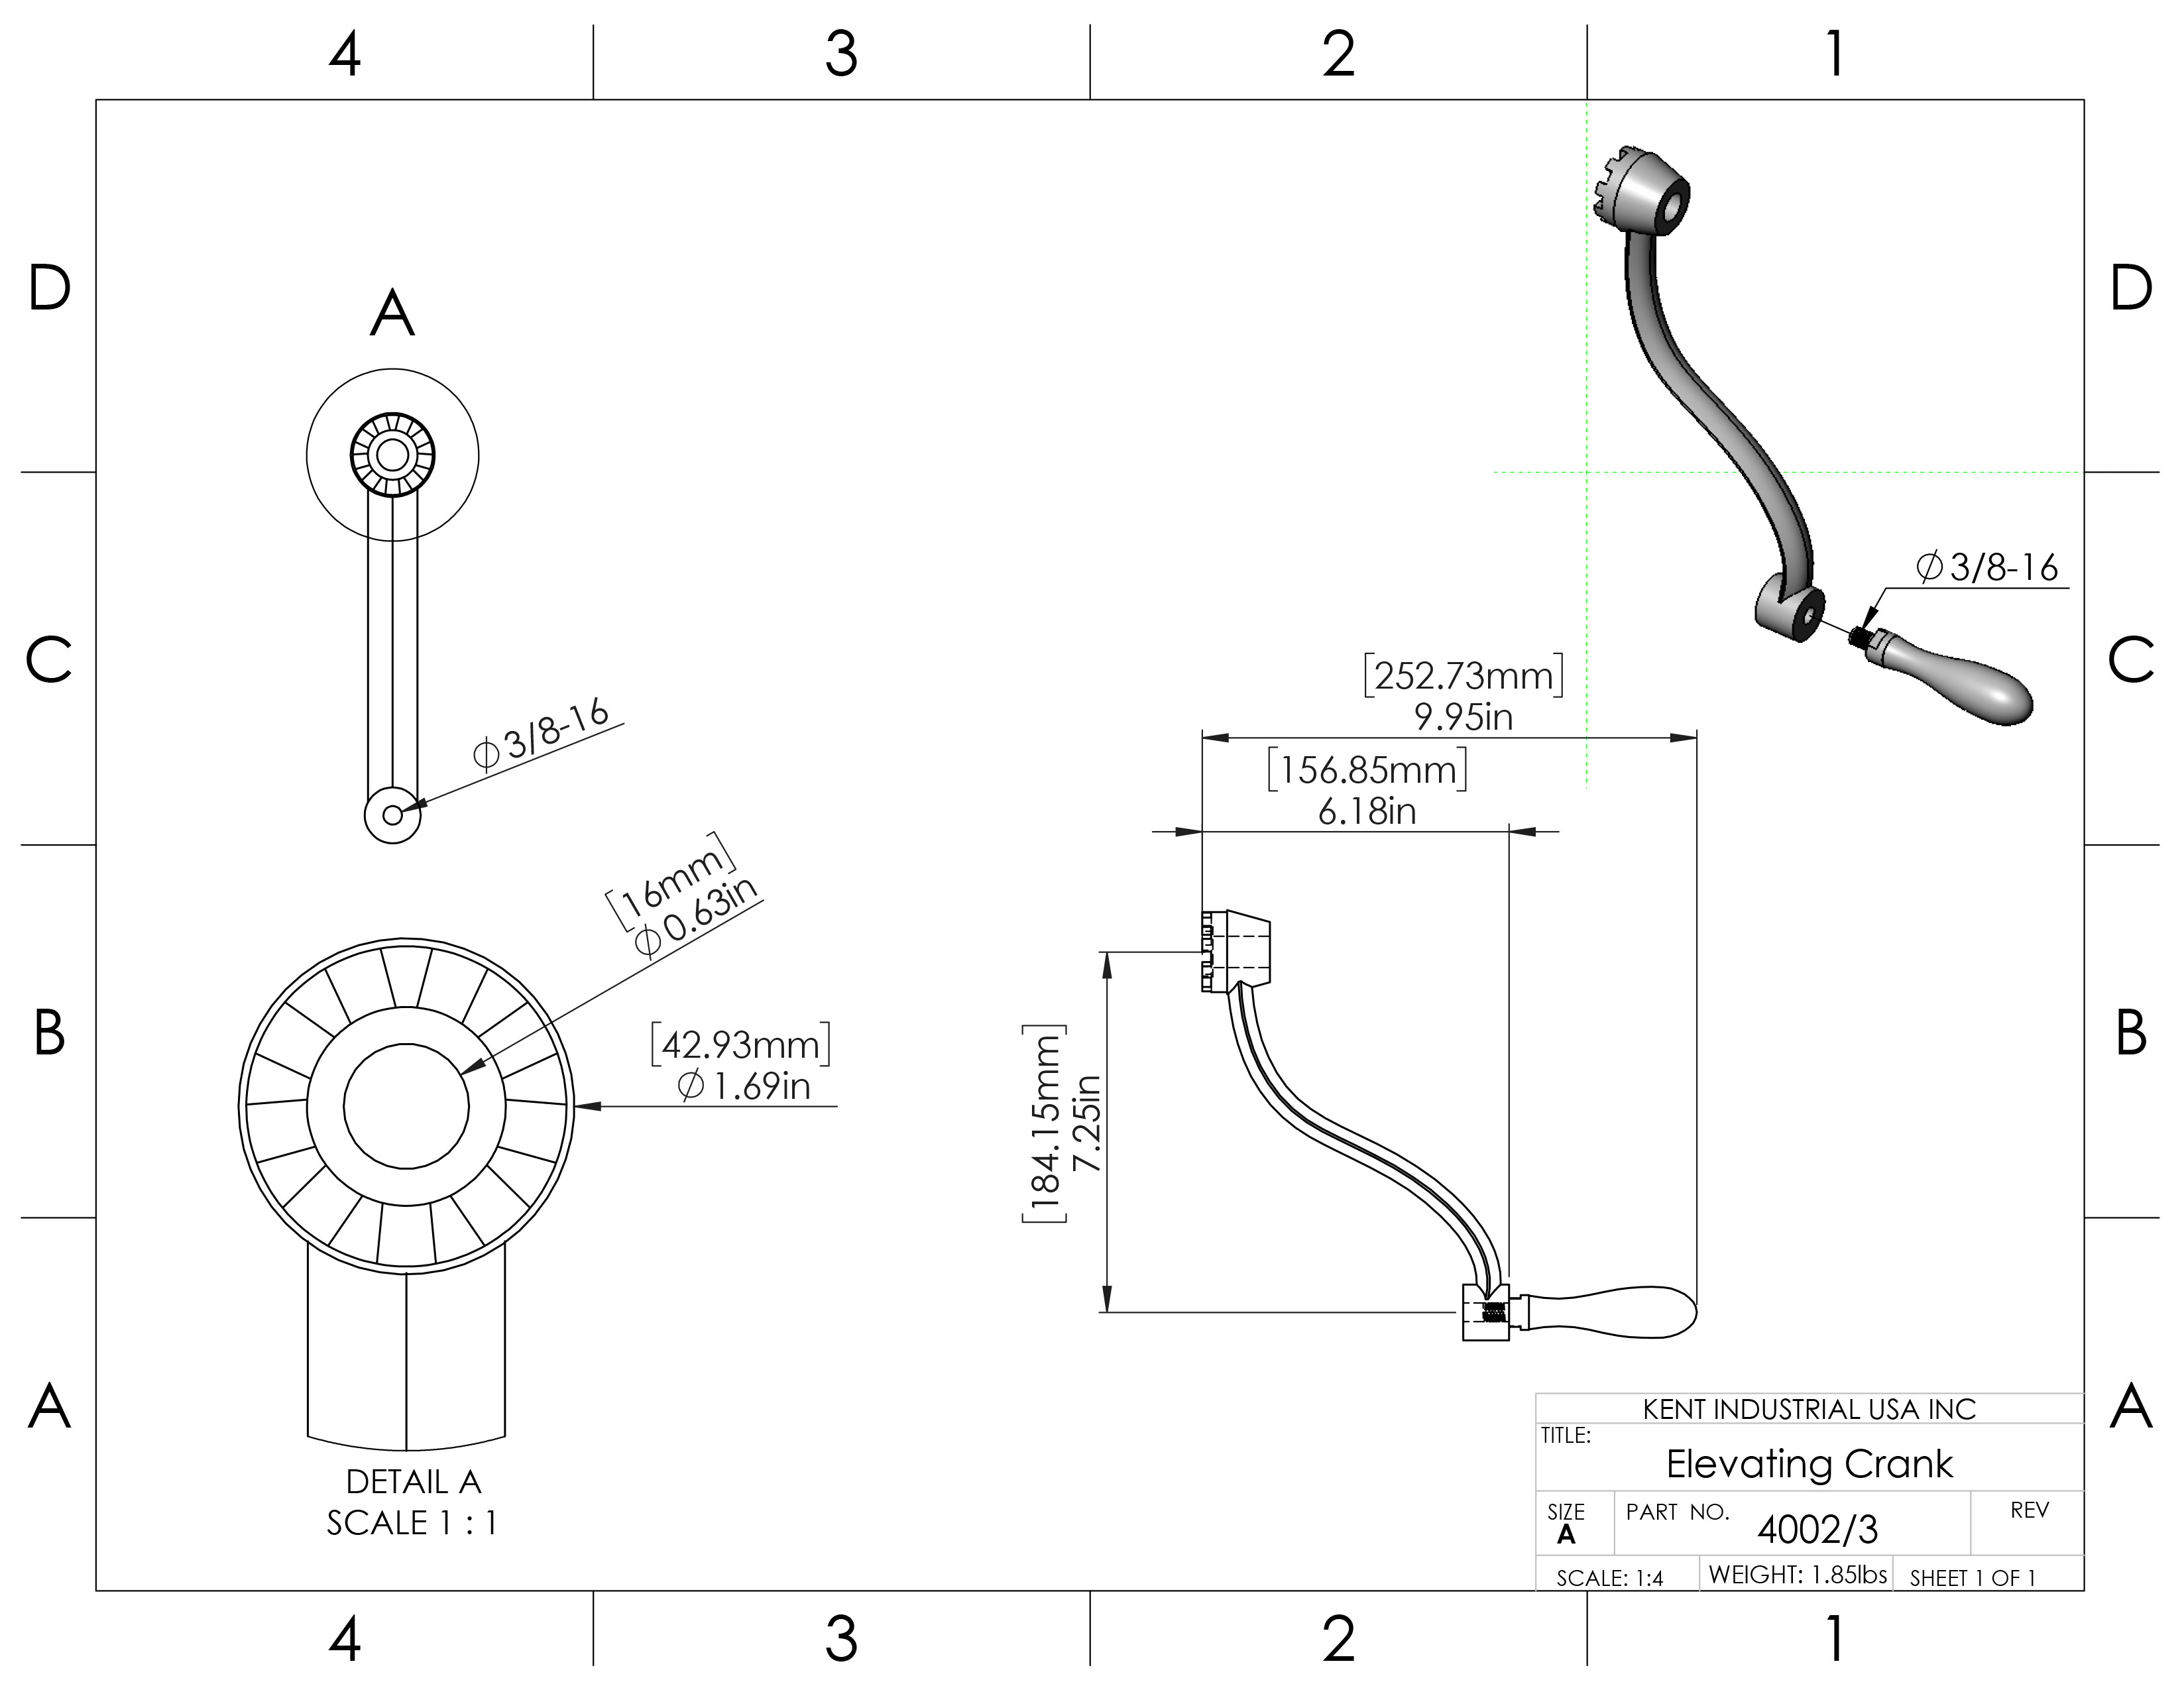 Elevating Crank Handle Assembly for Mills 4002/3